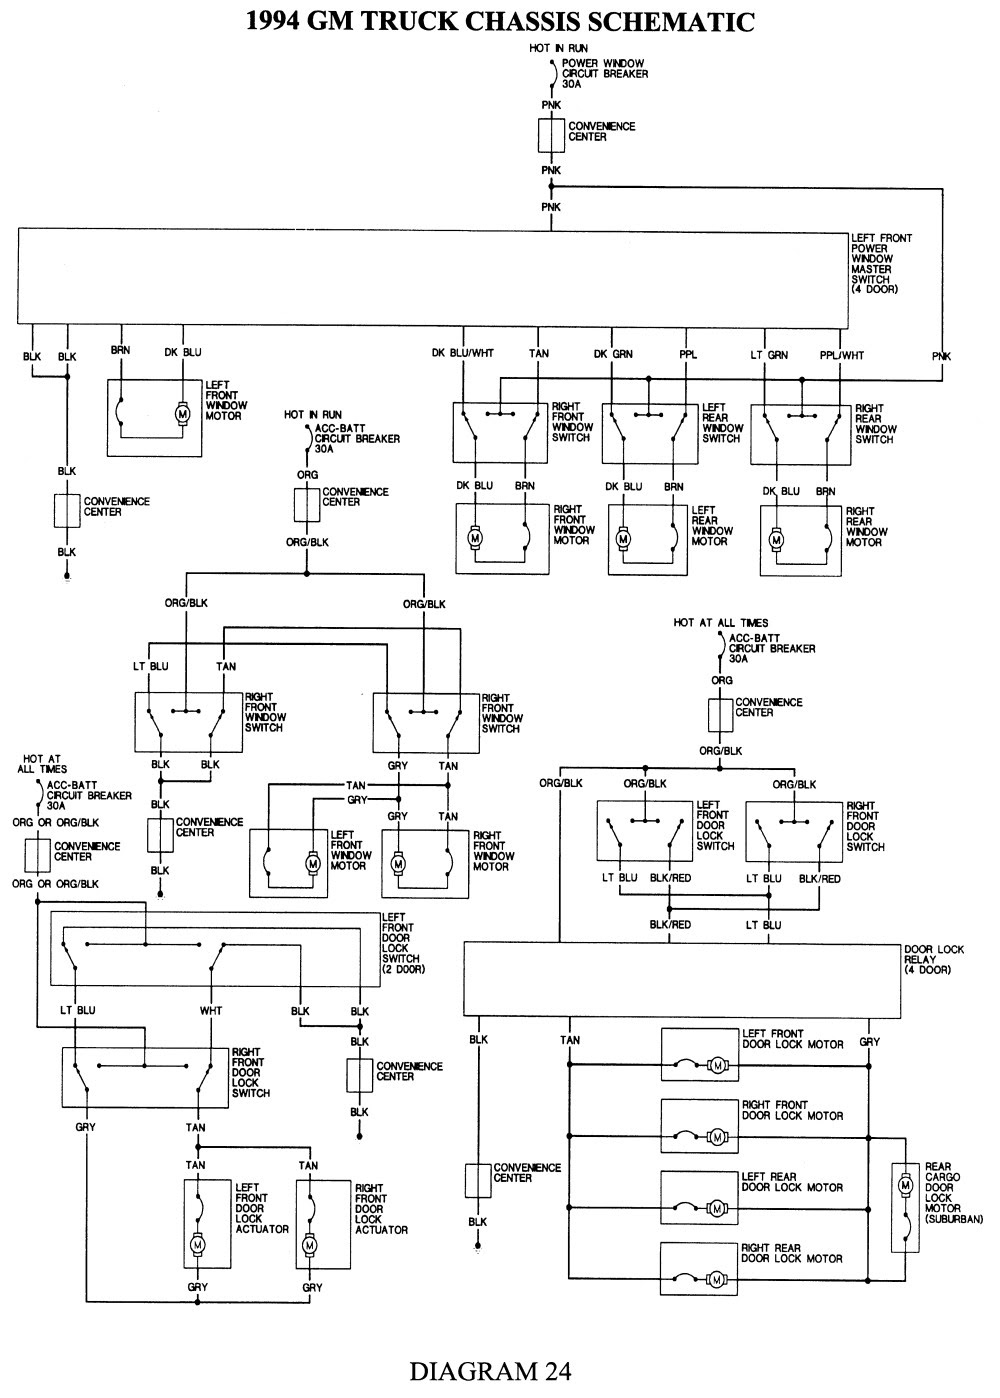 Diagram Toyota Wish 2003 Wiring Diagram Full Version Hd Quality Wiring Diagram Diagramsomers Banficesare It